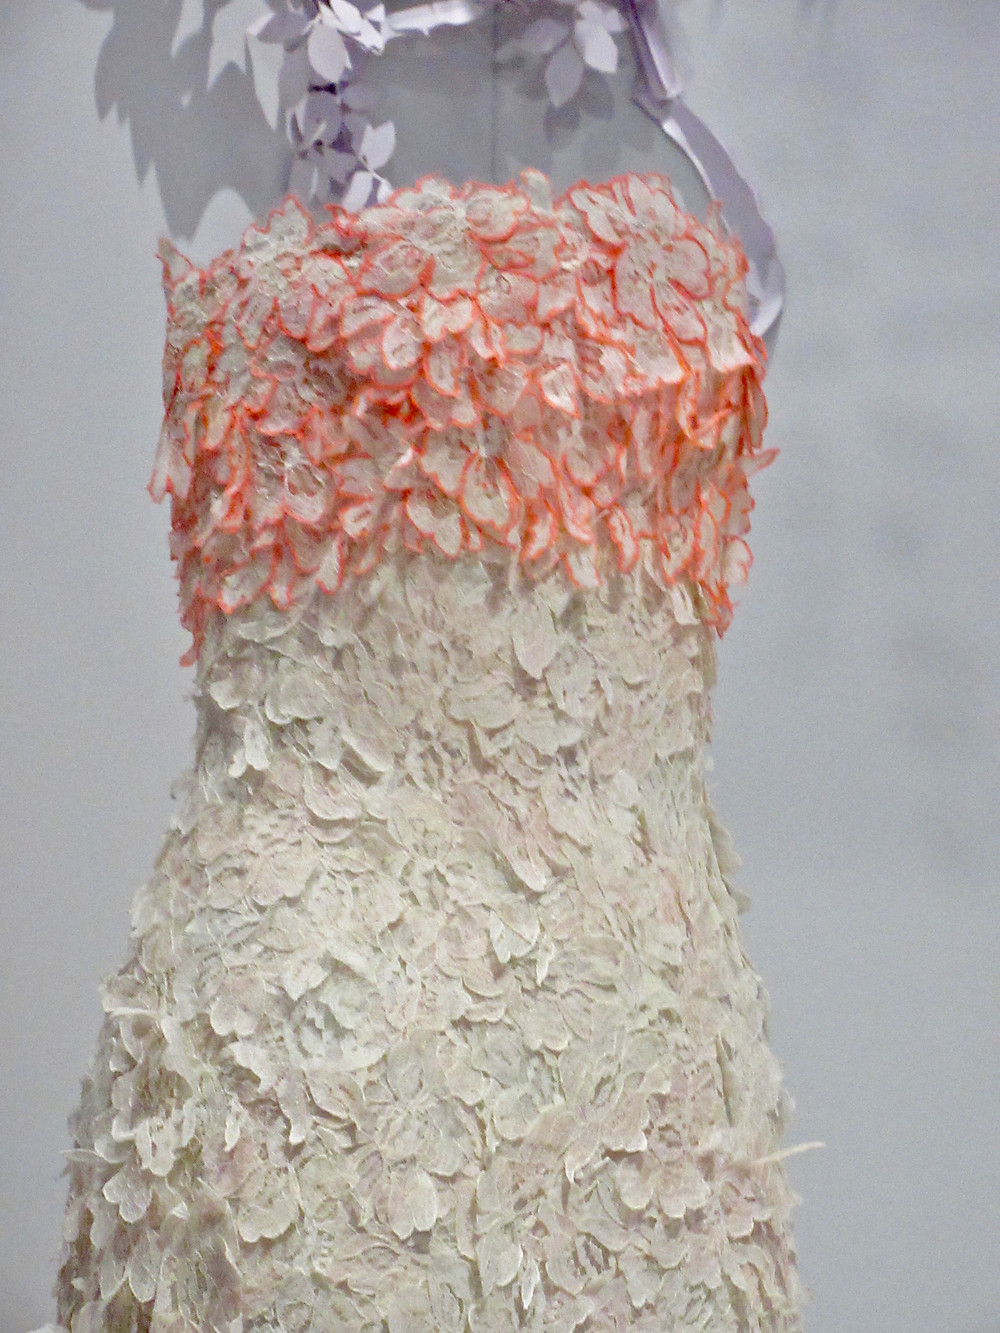 Raf Simons Dress Haute Couture Spring/Summer 2013. Silk organza and cotton guipure lace.